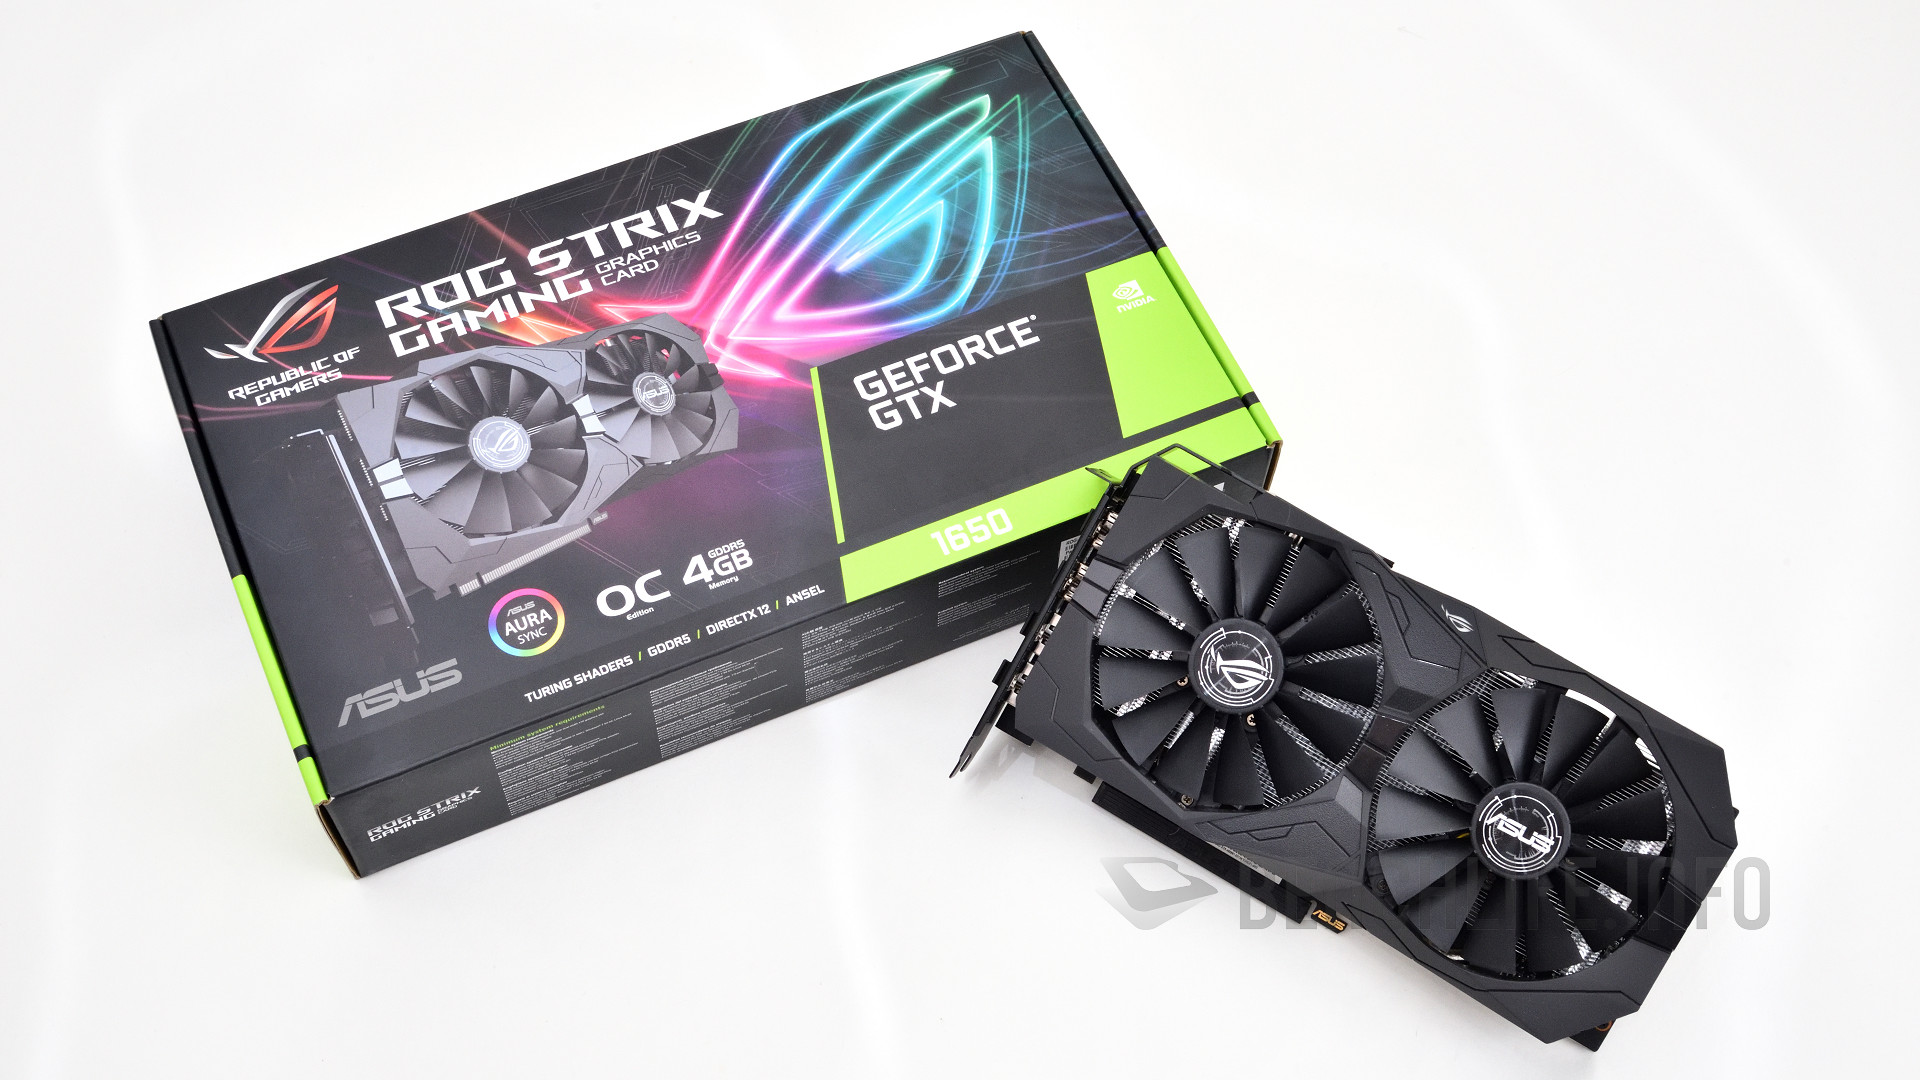 ASUS ROG Strix GeForce GTX 1650 OC